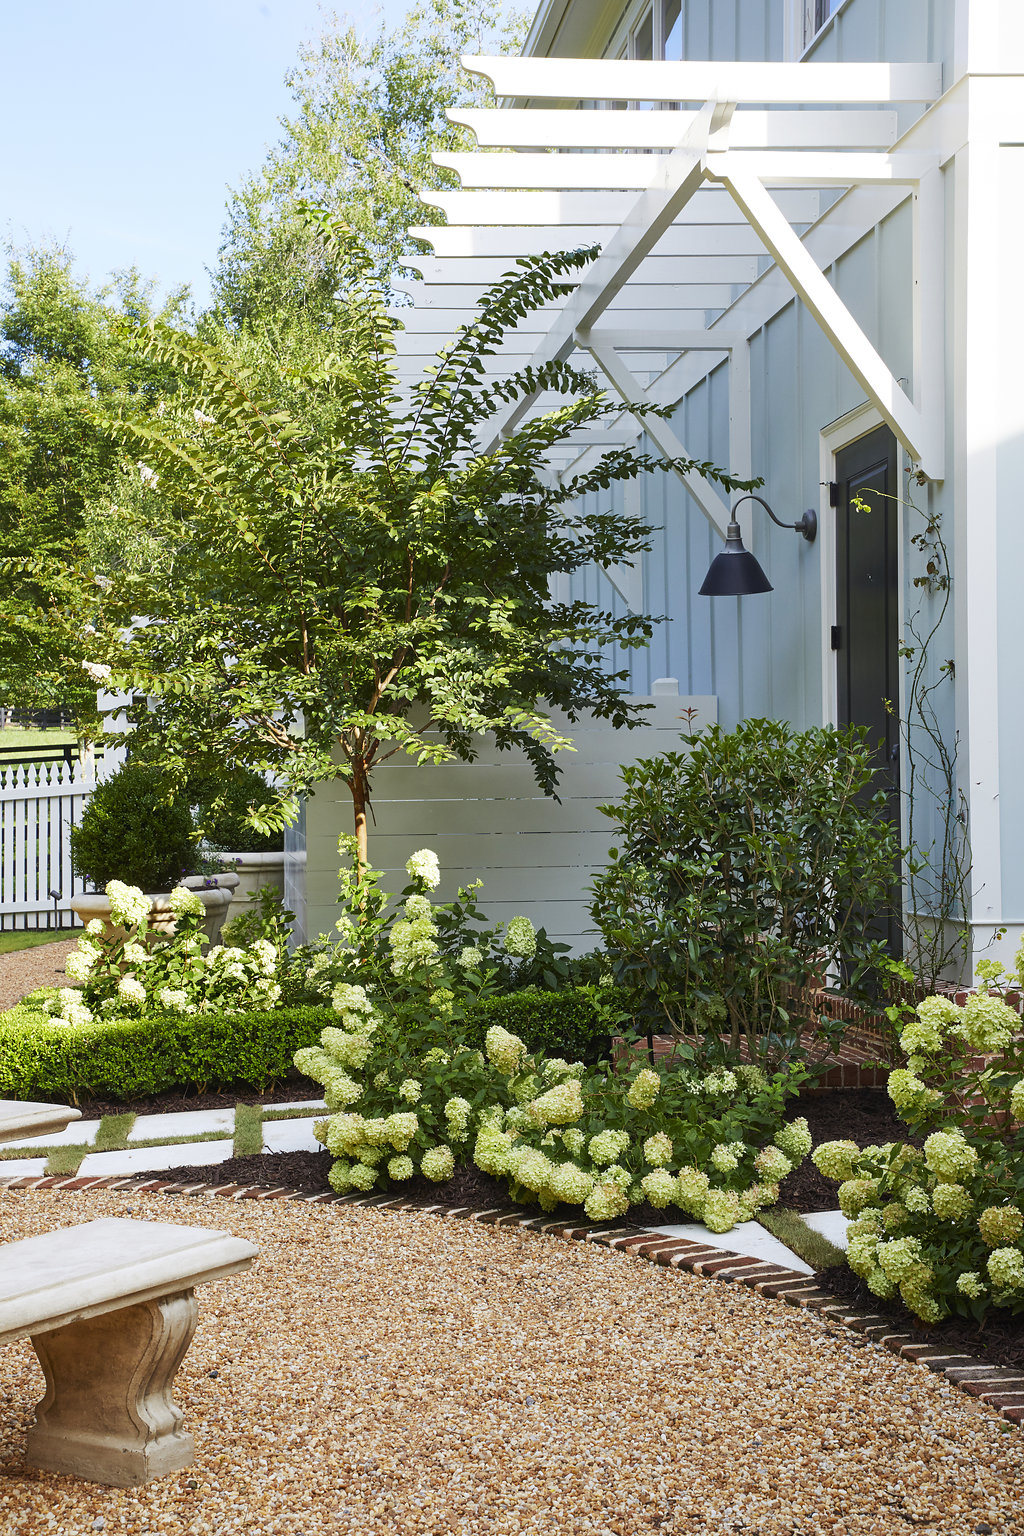 Hydrangea bushes and trees next to the entrance of the home.